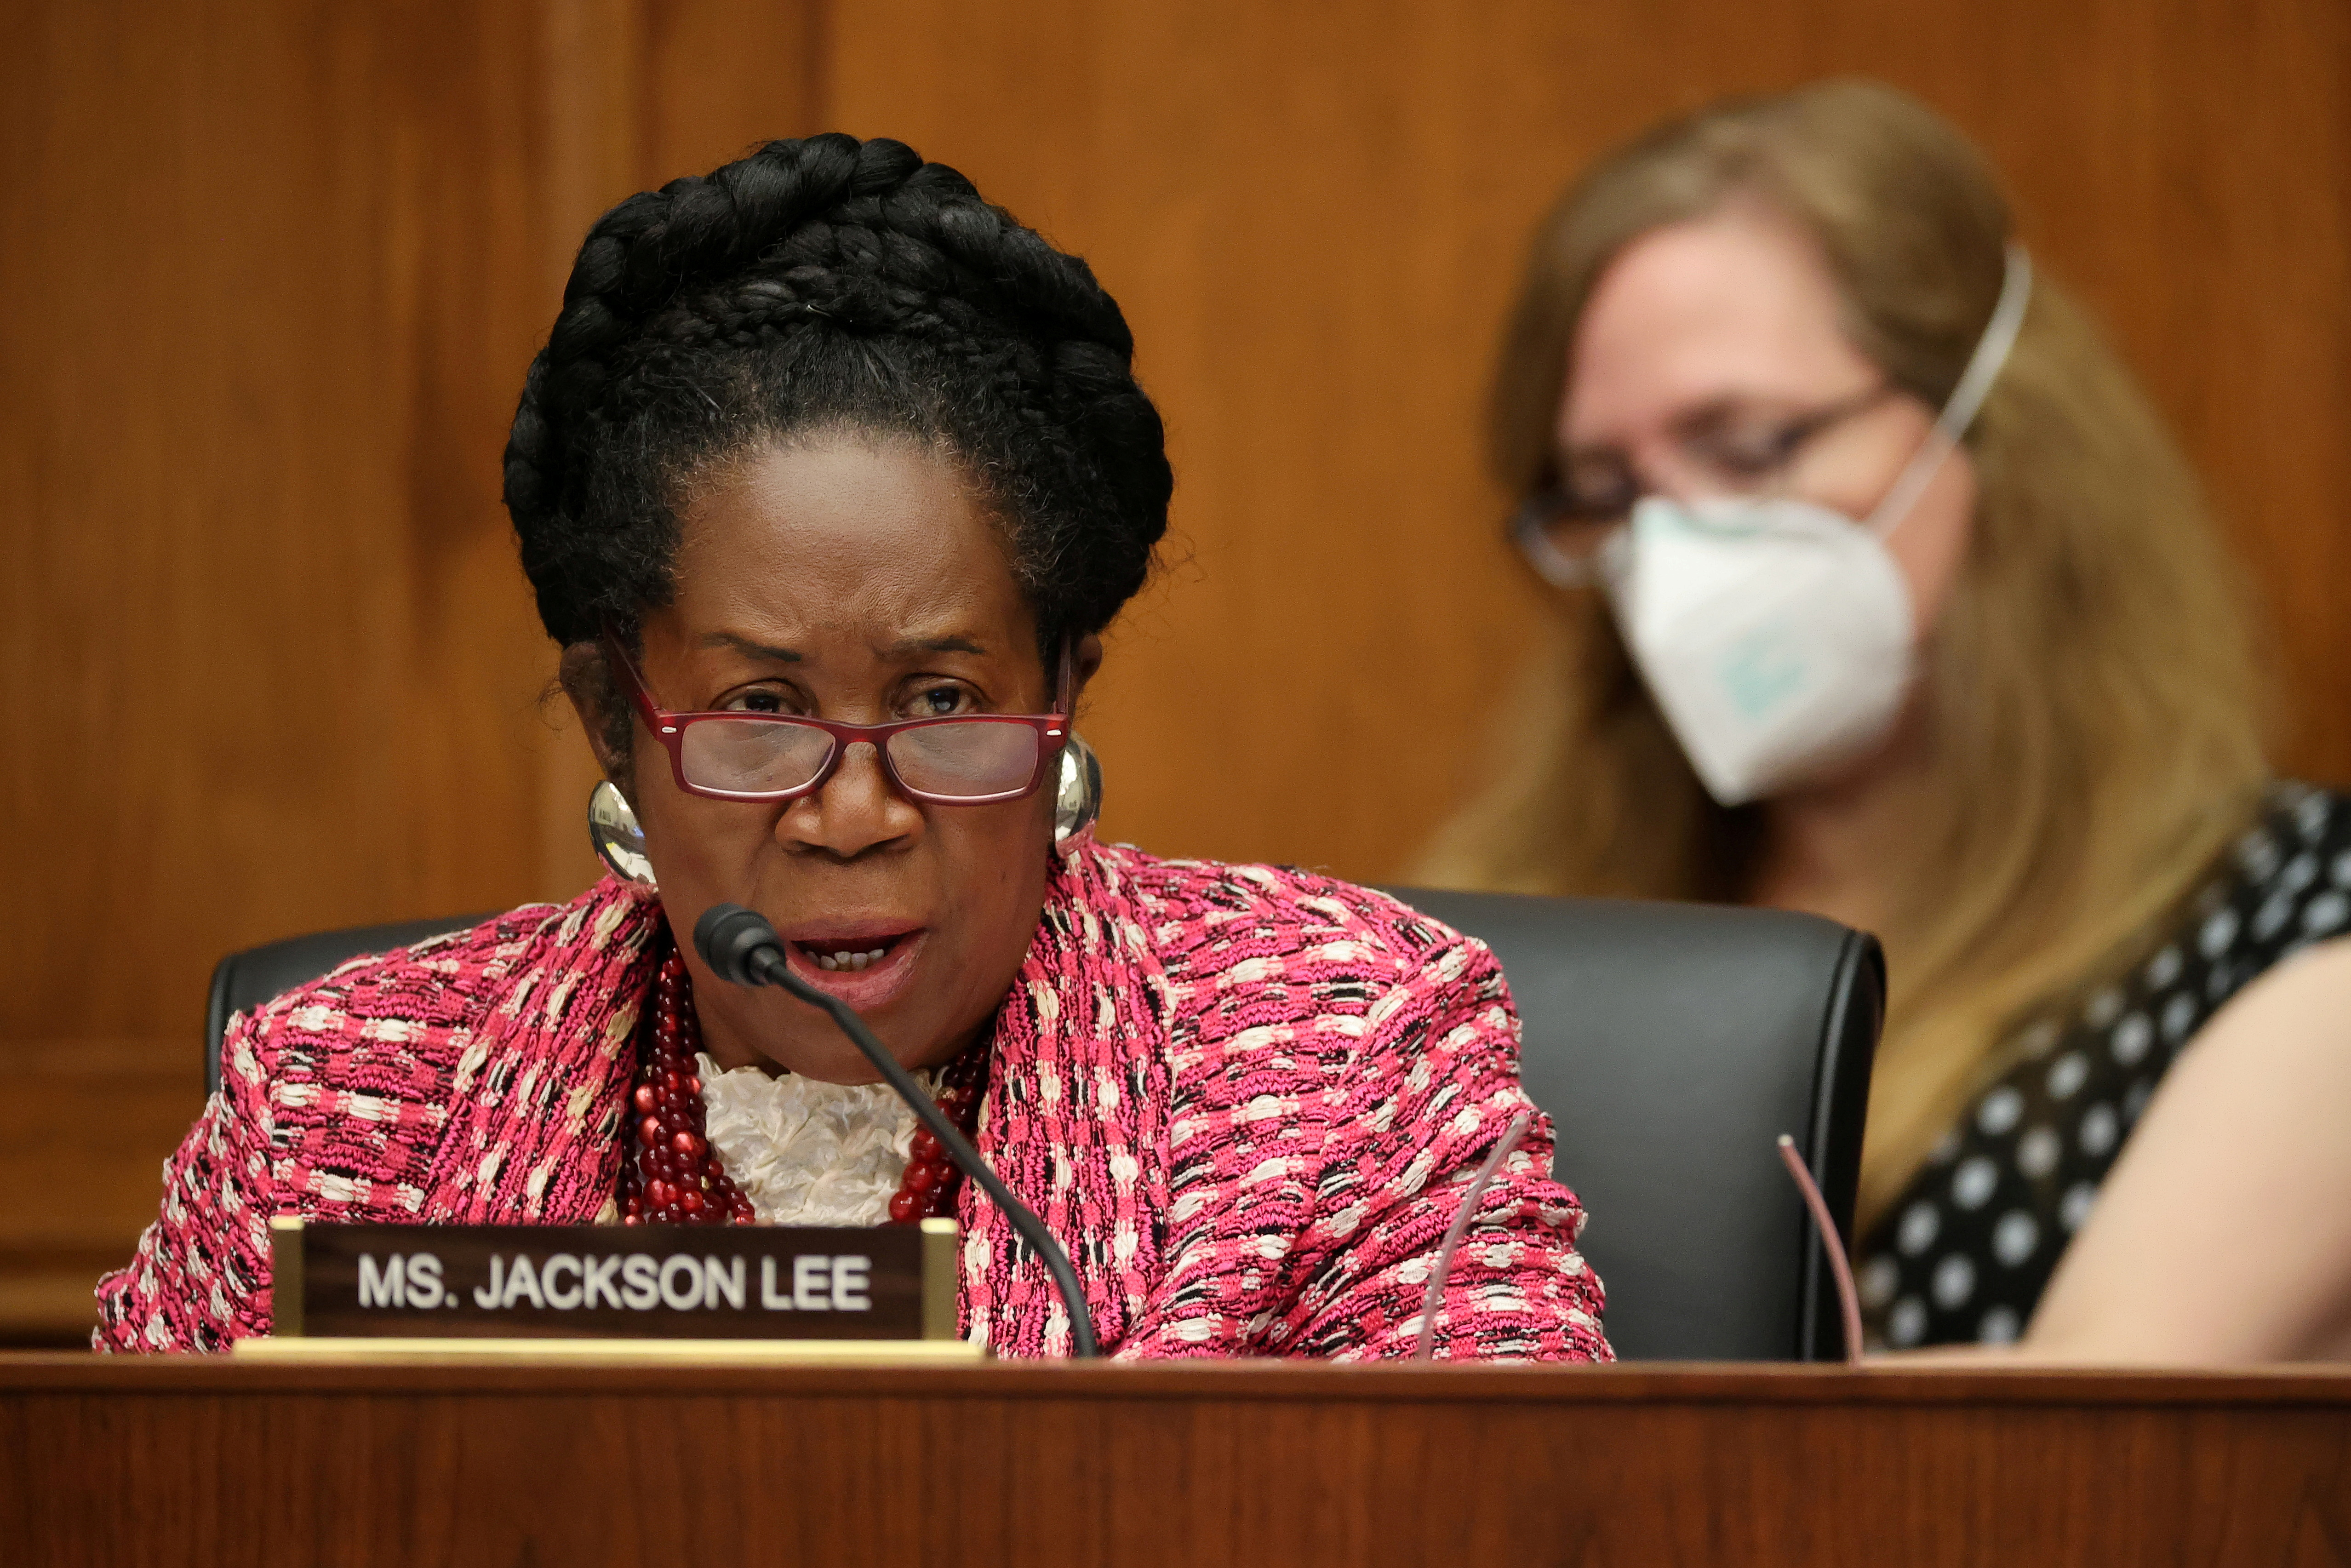 House Homeland Security Committee member Rep. Sheila Jackson Lee (D-TX) questions witnesses during a hearing about 'worldwide threats to the homeland' in the Rayburn House Office Building on Capitol Hill in Washington, U.S., September 17, 2020. Chip Somodevilla/Pool via REUTERS